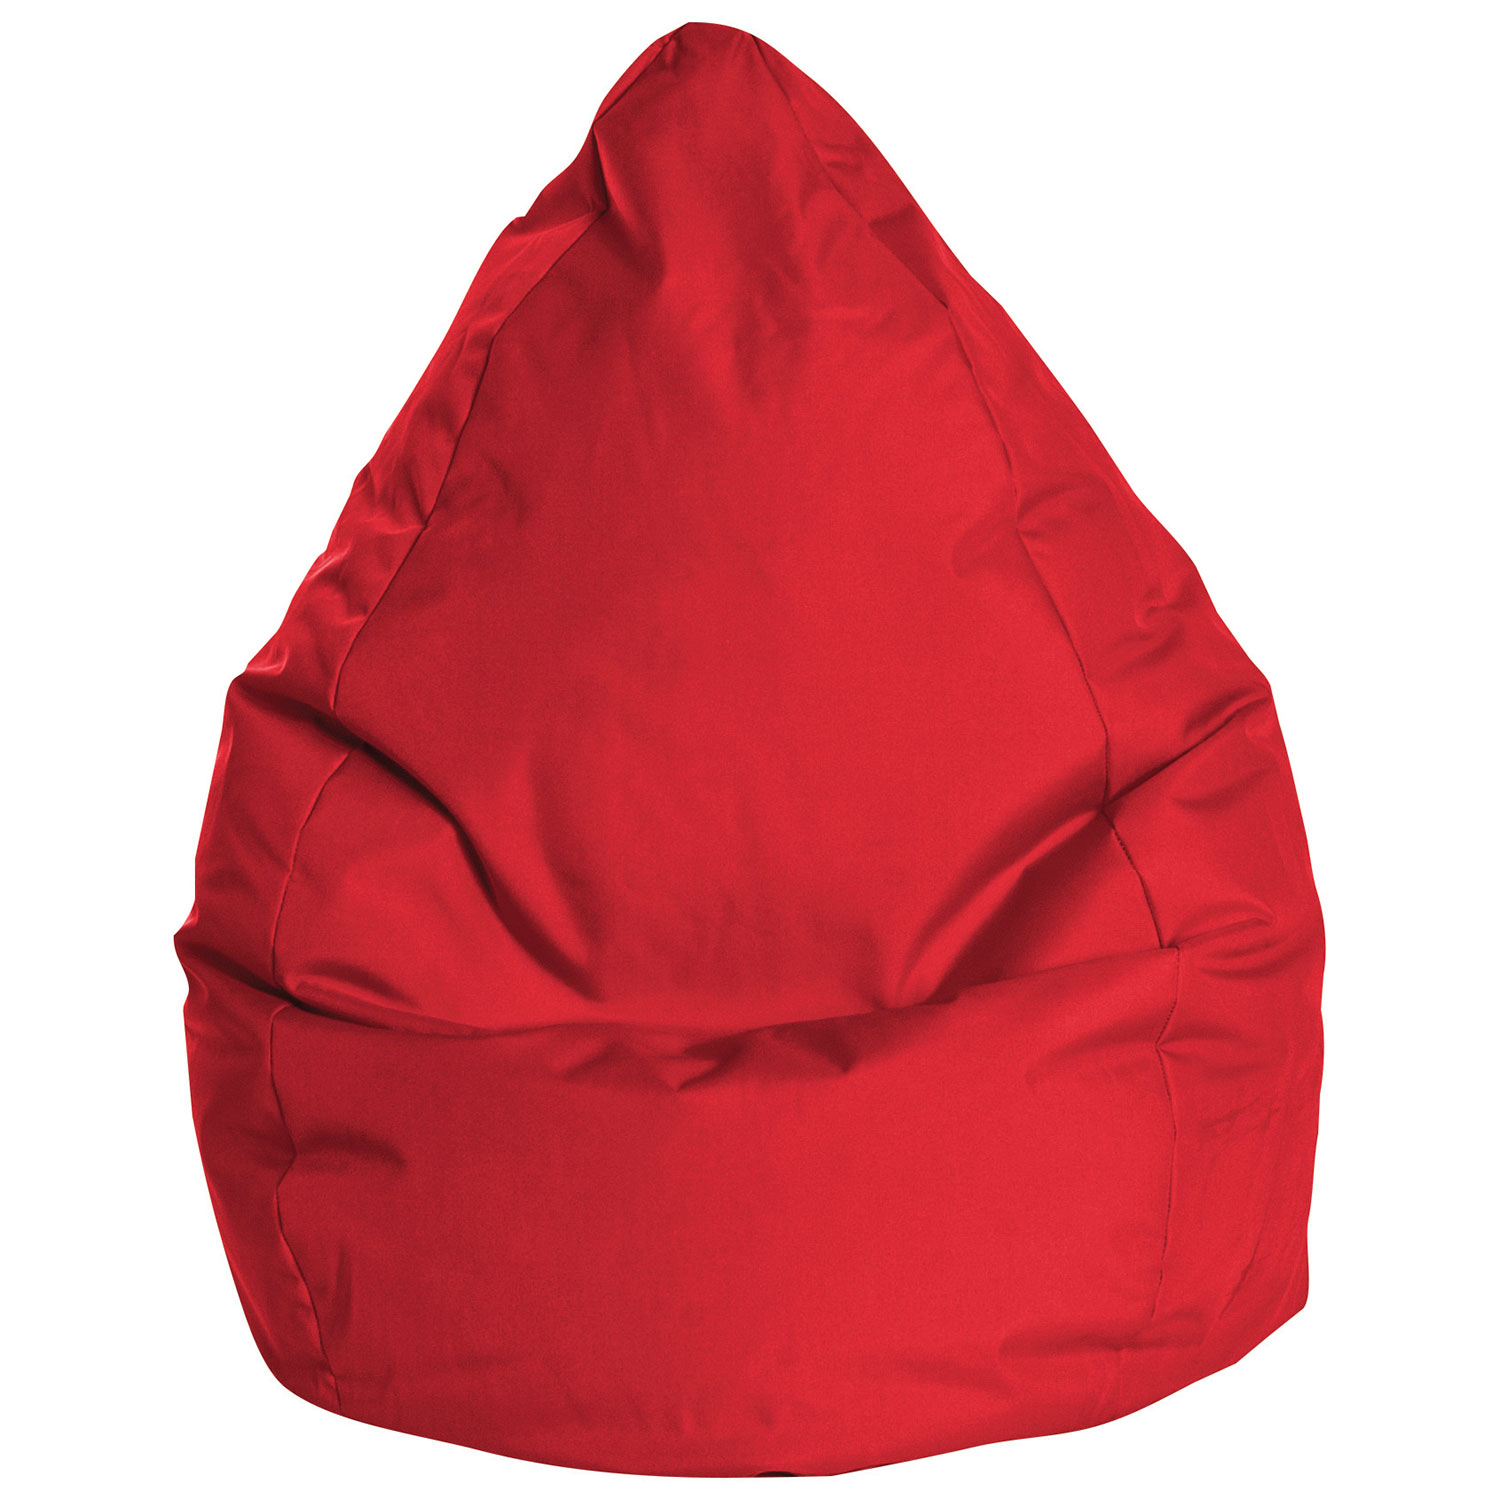 sitting point brava xl contemporary bean bag chair  tomate  kids  - sitting point brava xl contemporary bean bag chair  tomate  kids  teenschairs  best buy canada